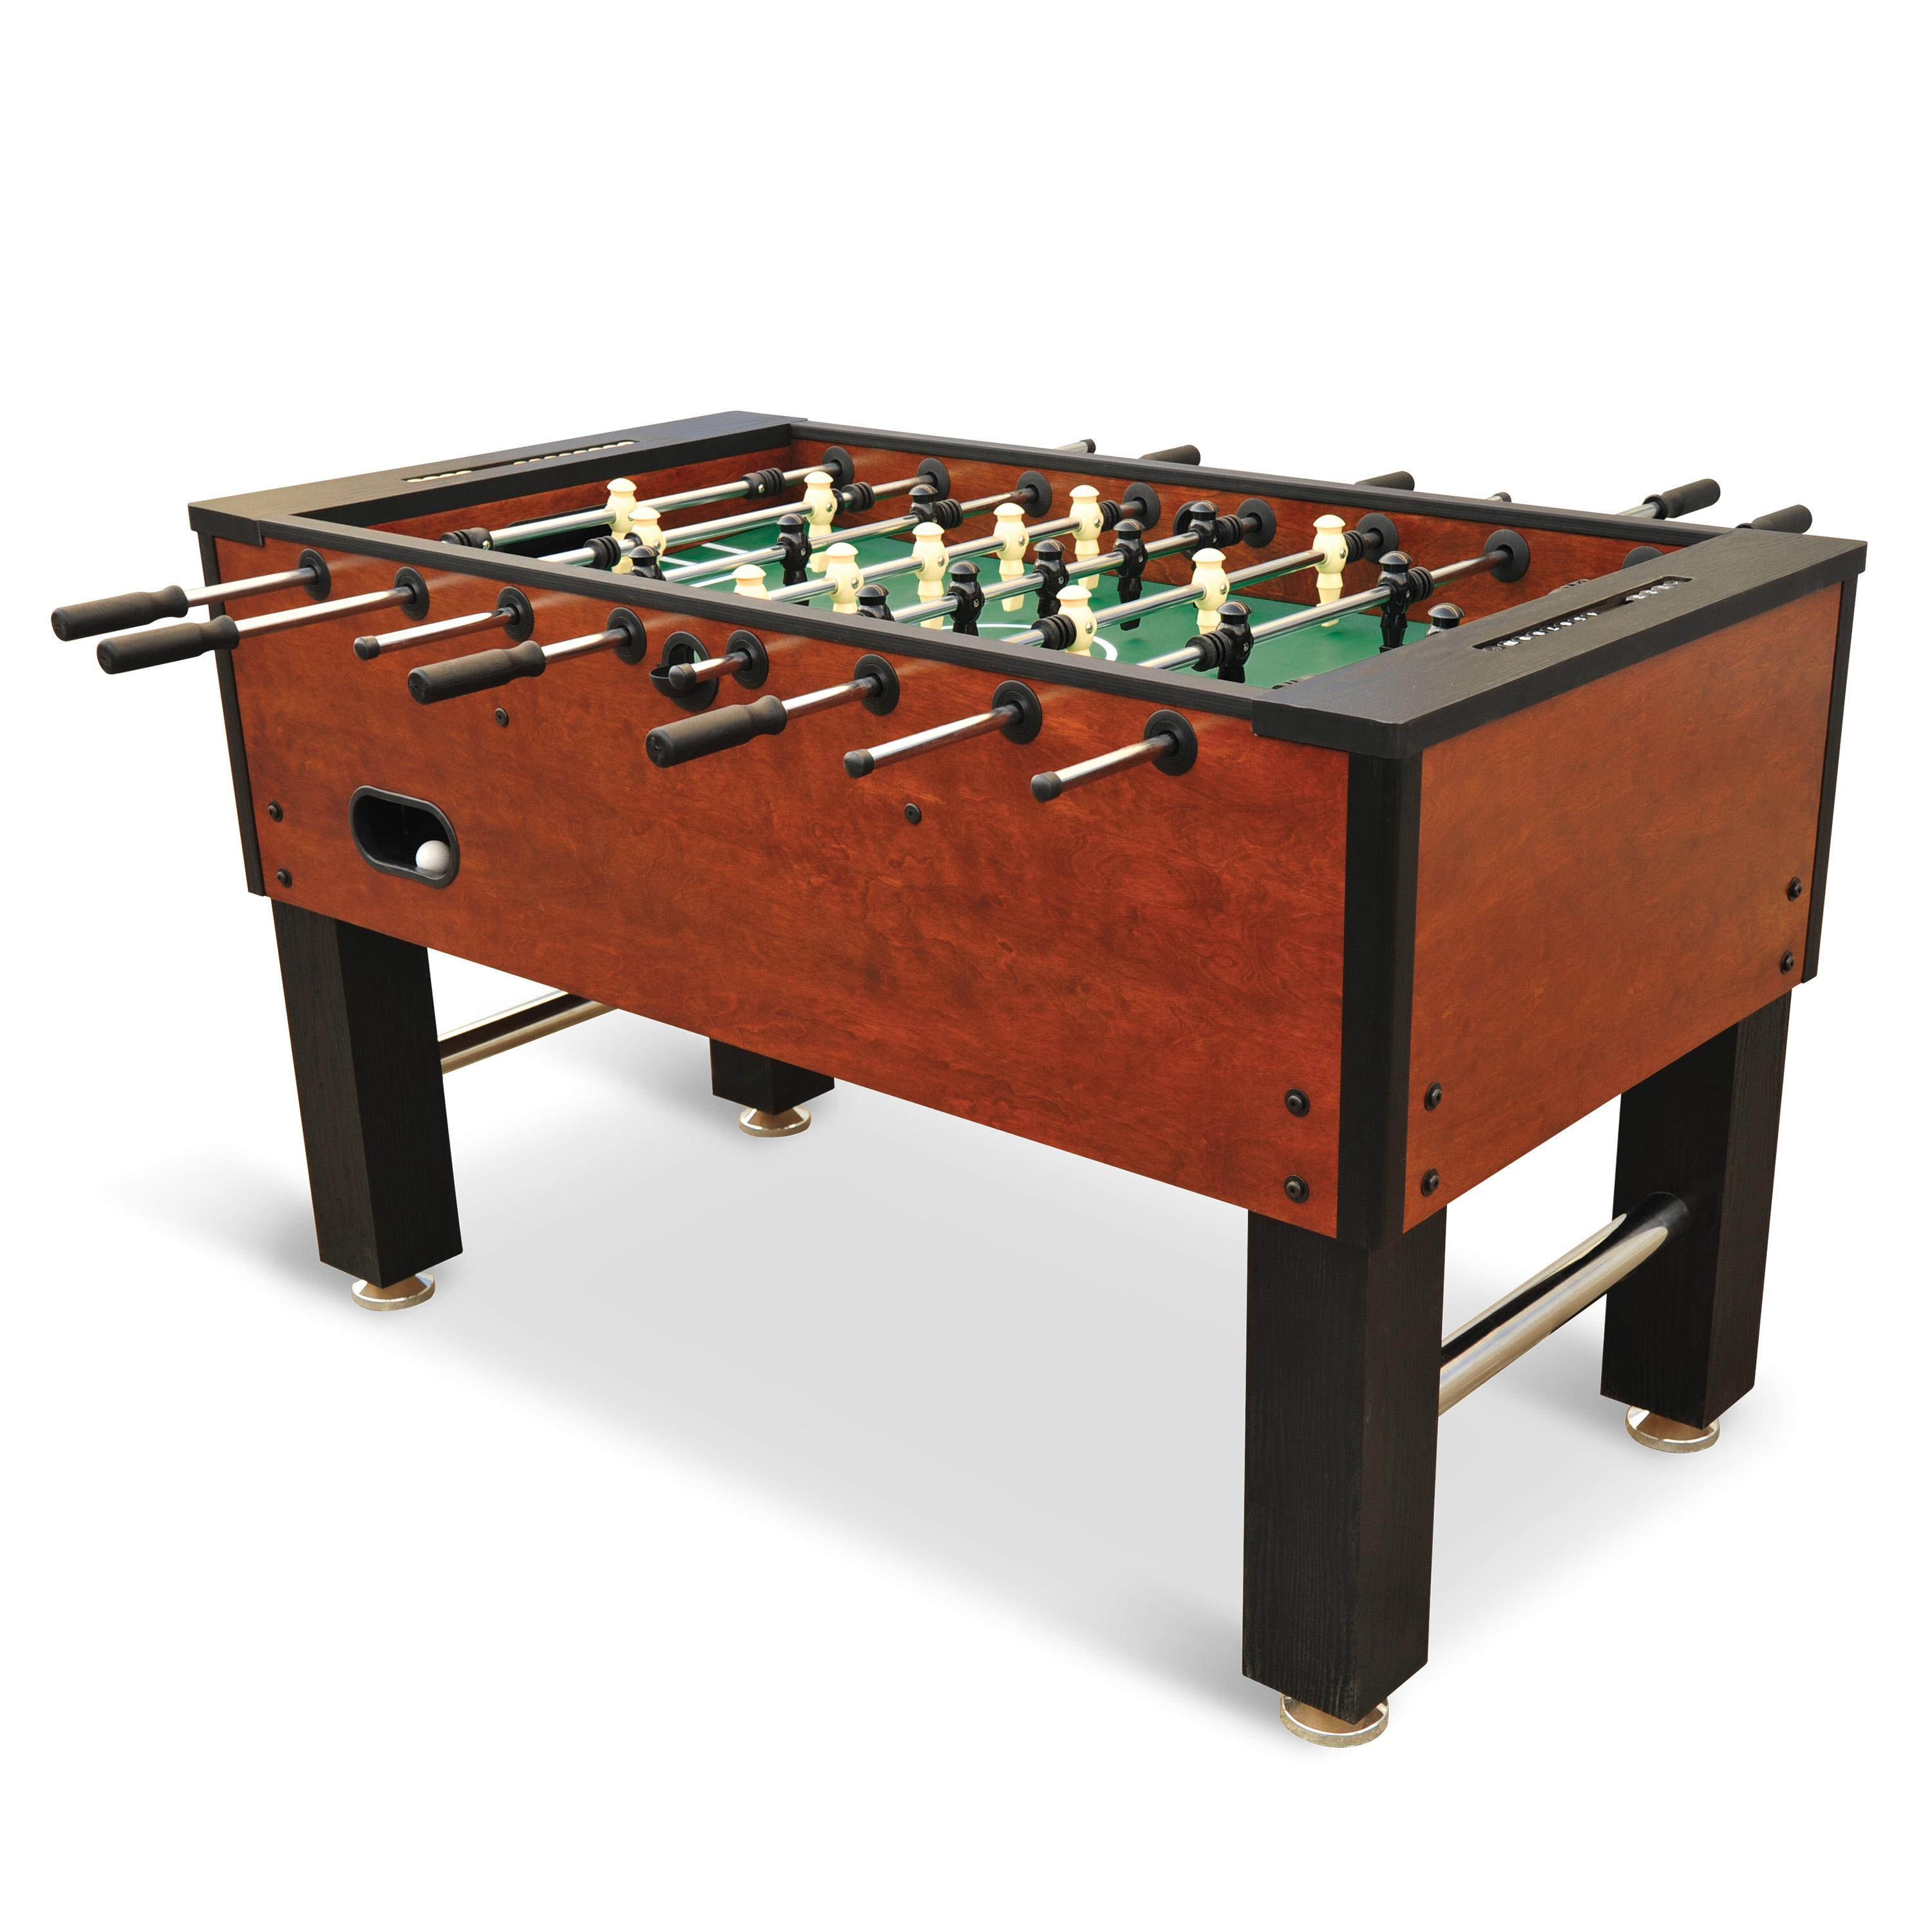 Amazon Harvil 56 Inch Beach ber Foosball Table for Kids